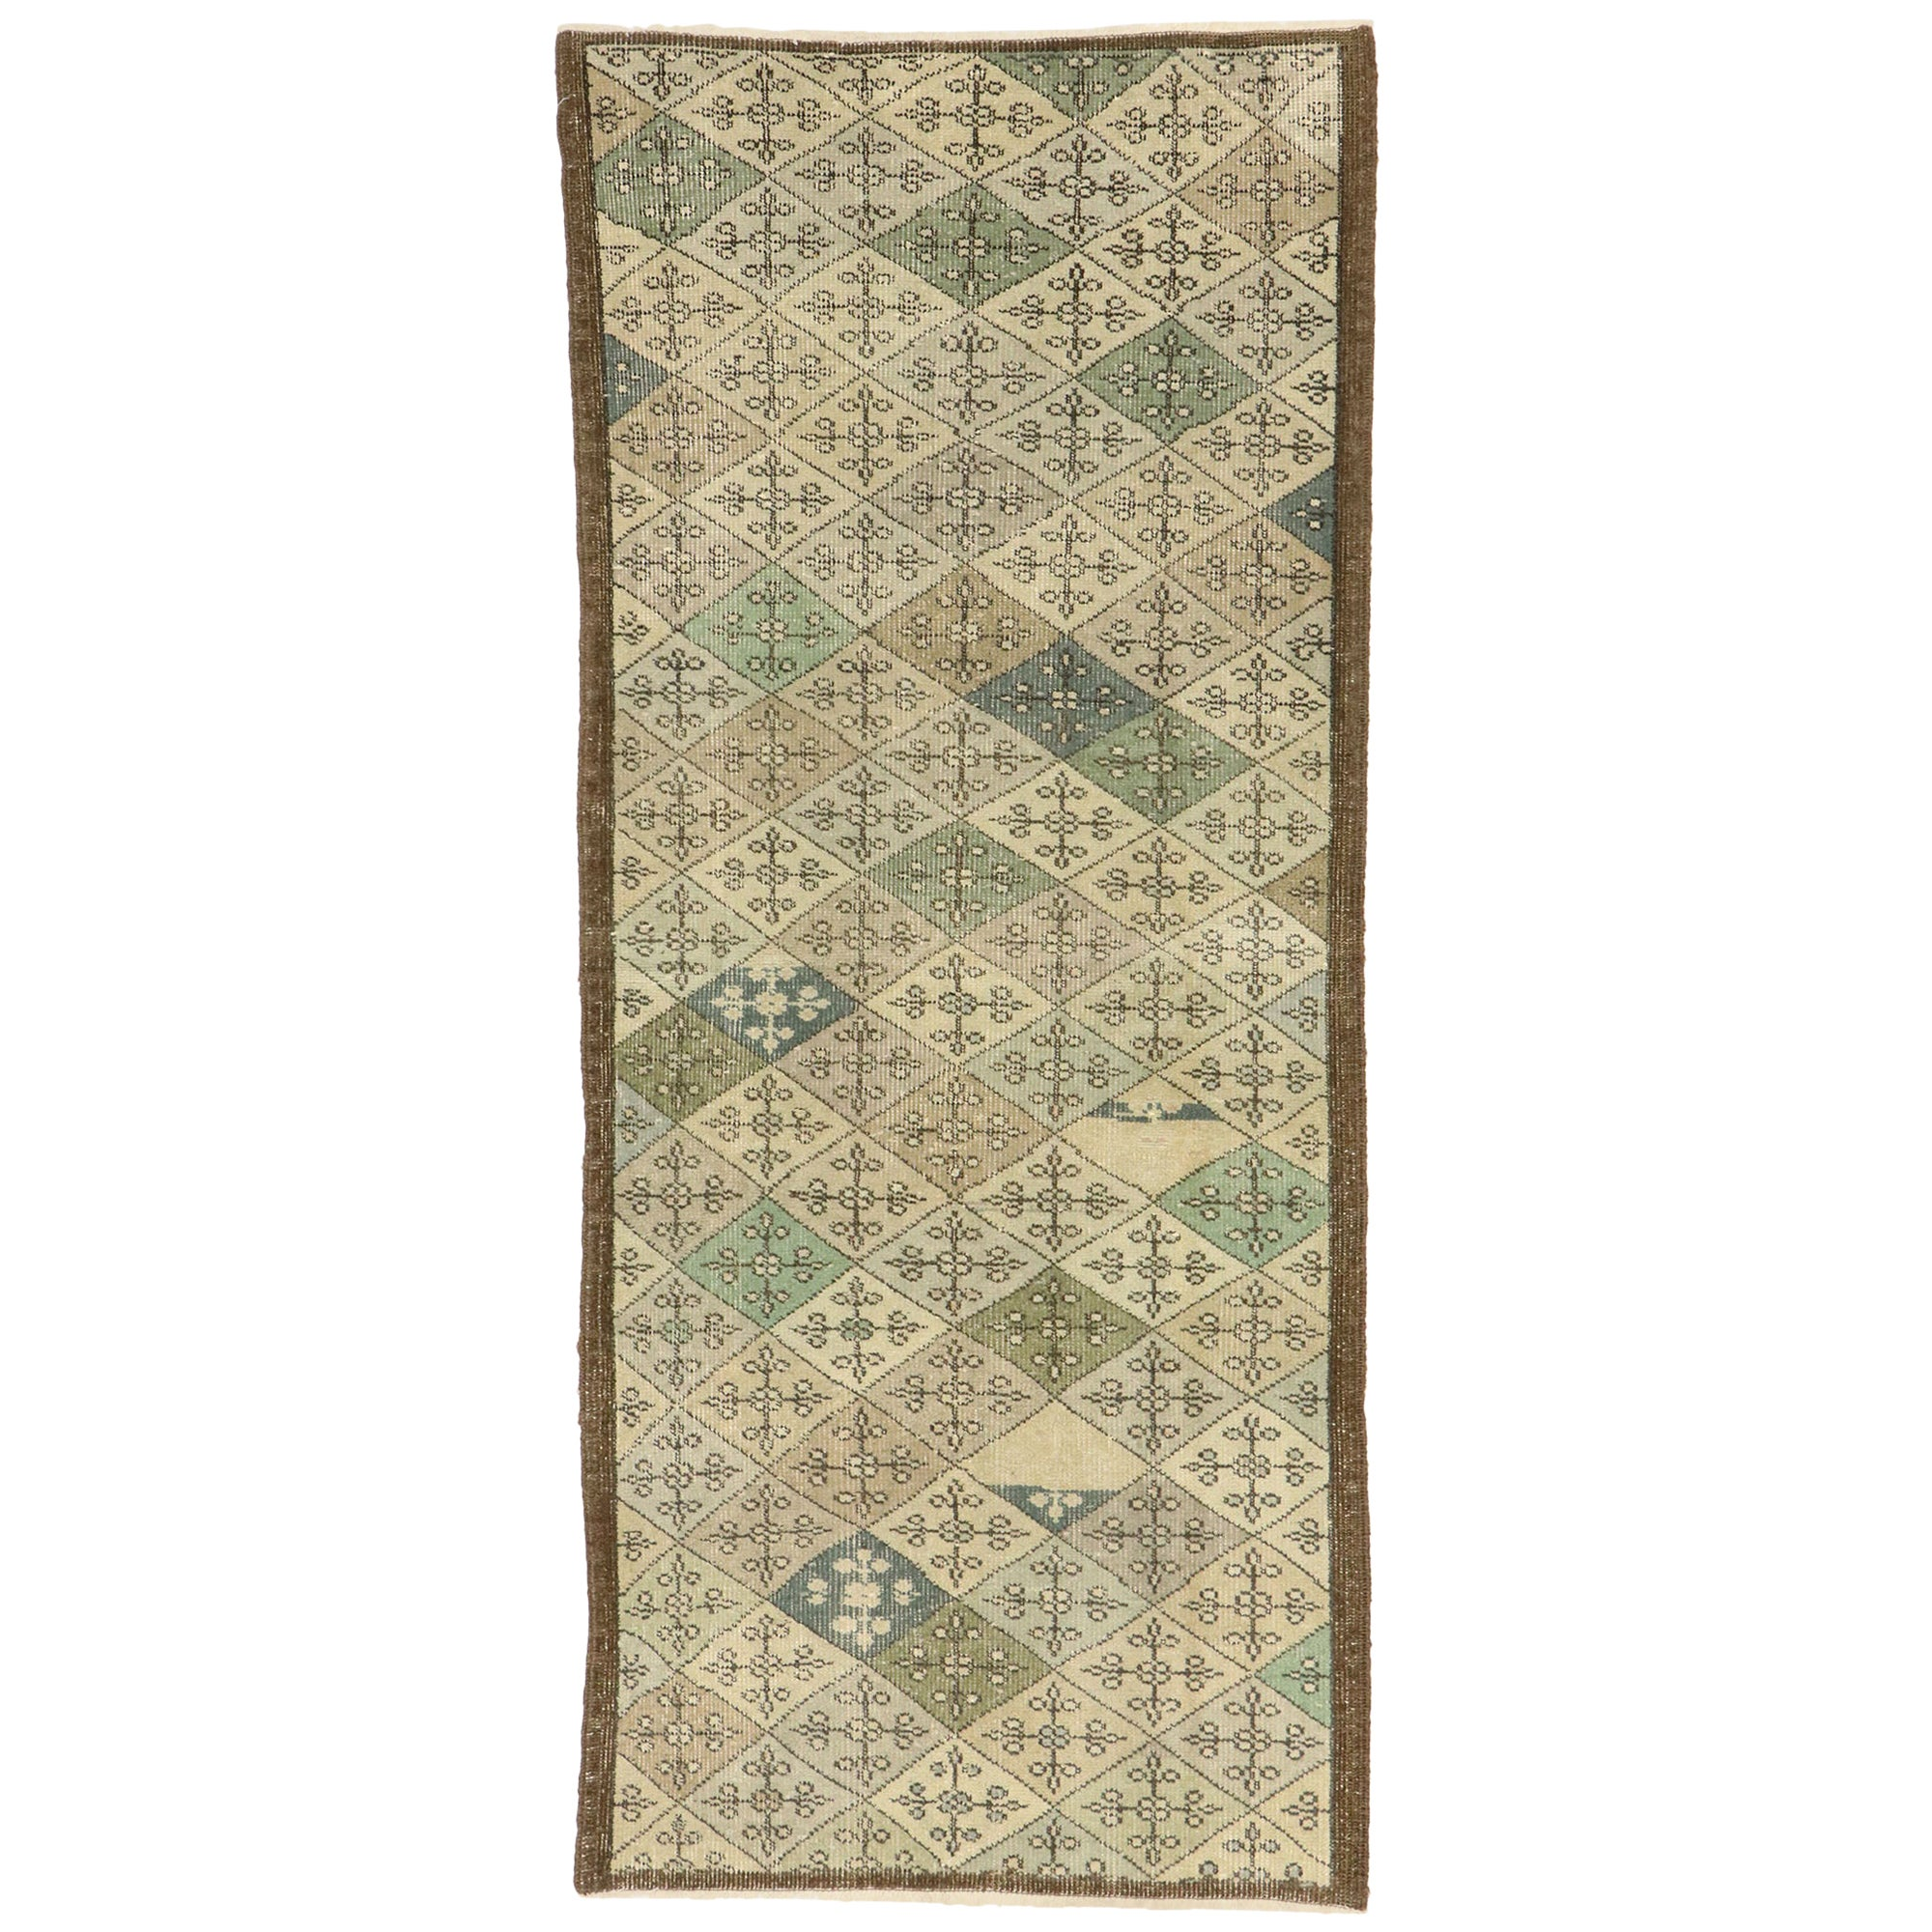 Zeki Muren Distressed Vintage Turkish Sivas Rug with Swedish Farmhouse Style